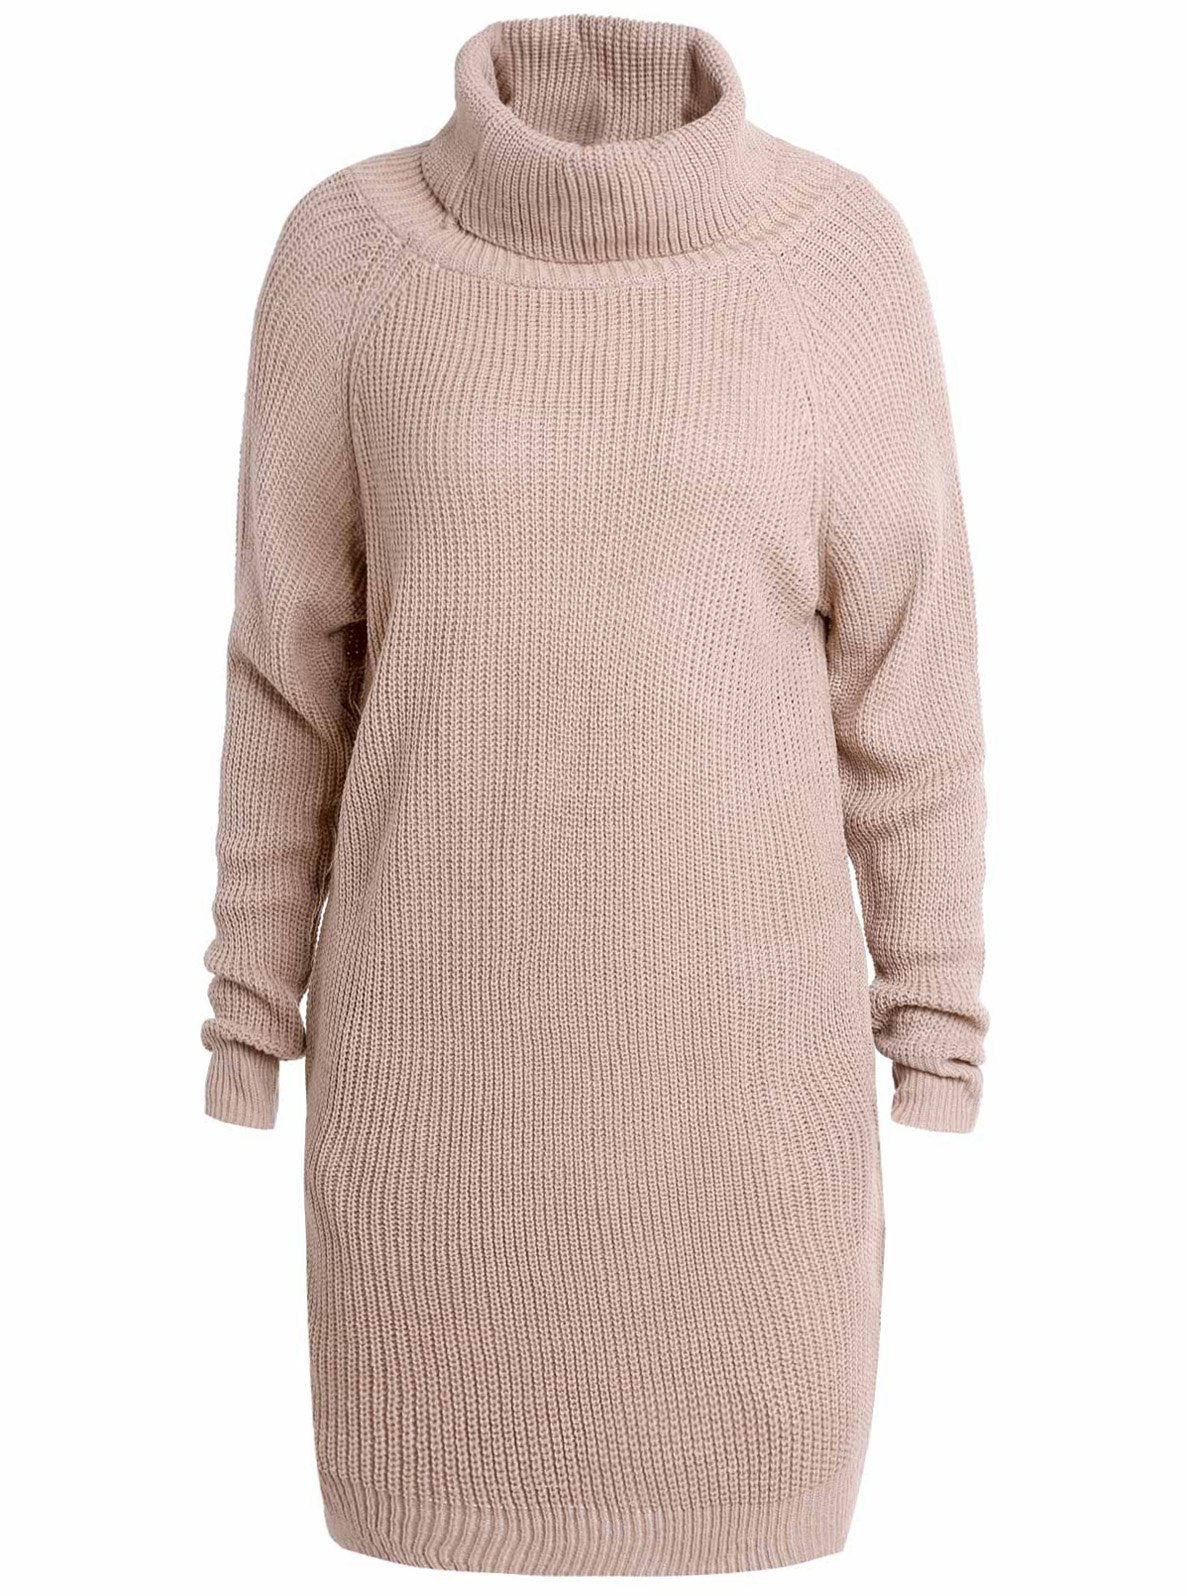 Buy Stylish Turtle Collar Long Sleeves Solid Color Women's Jumper